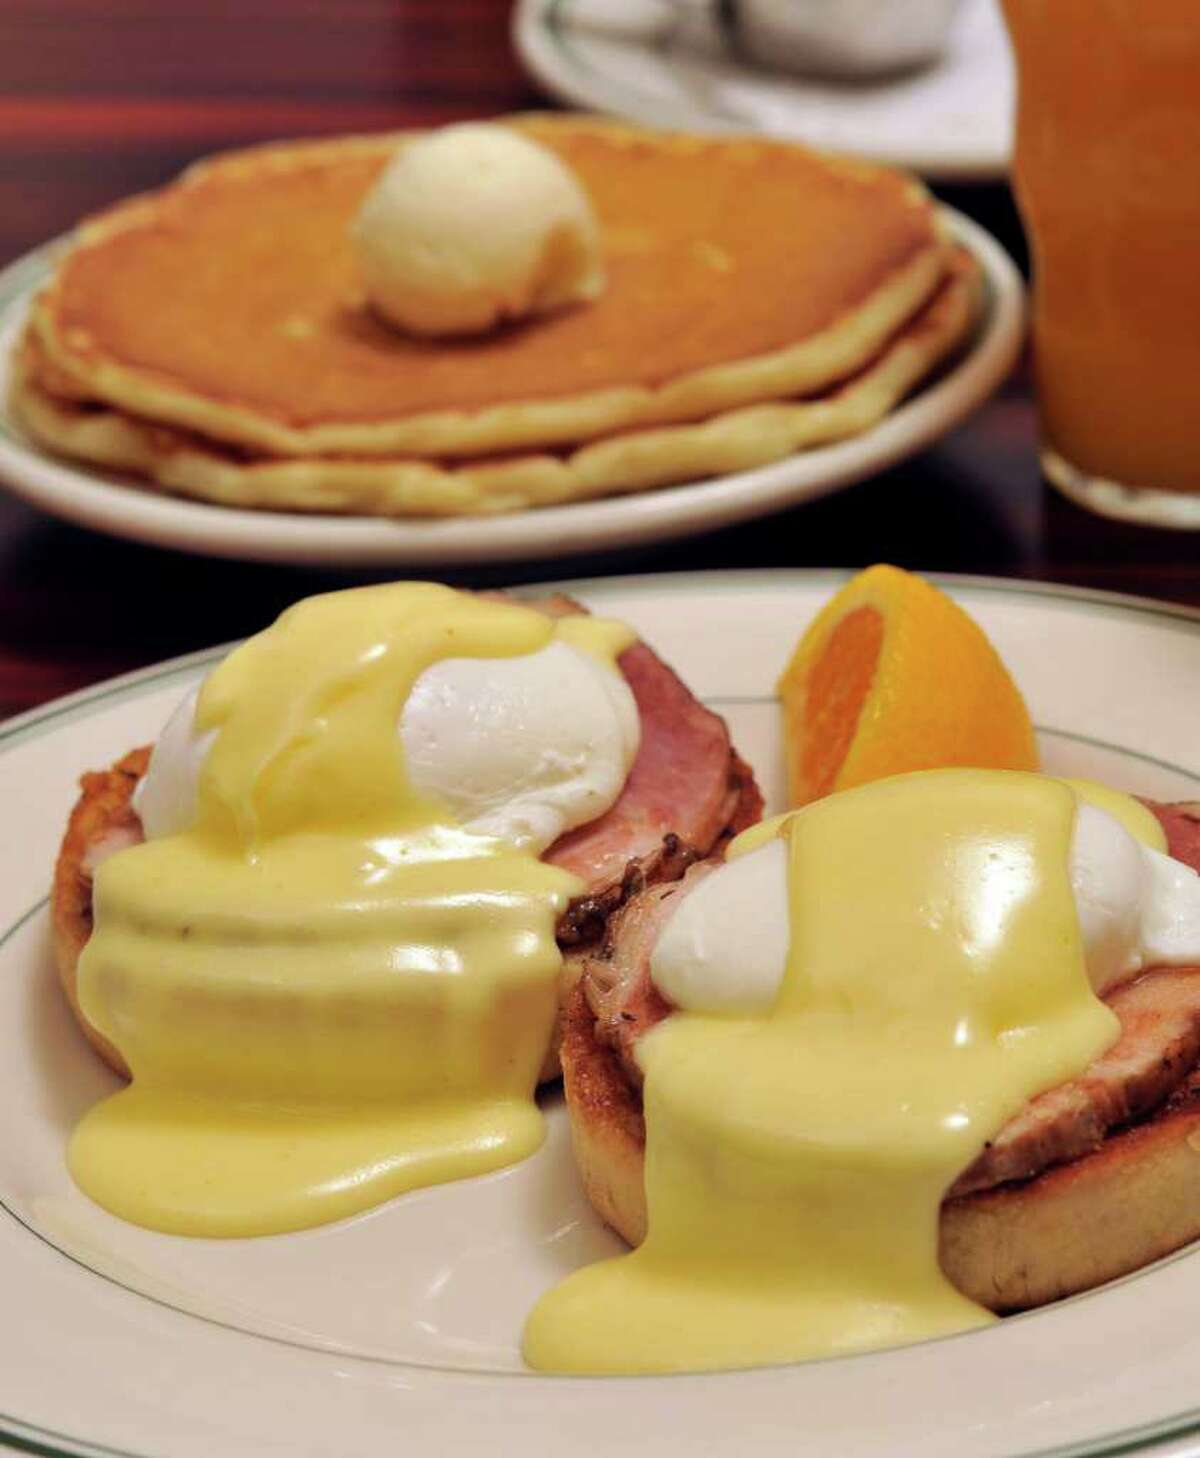 Magnolia Pancake Haus offers Eggs Benedict. The restaurant is Readers' Choice for best breakfast and best brunch.